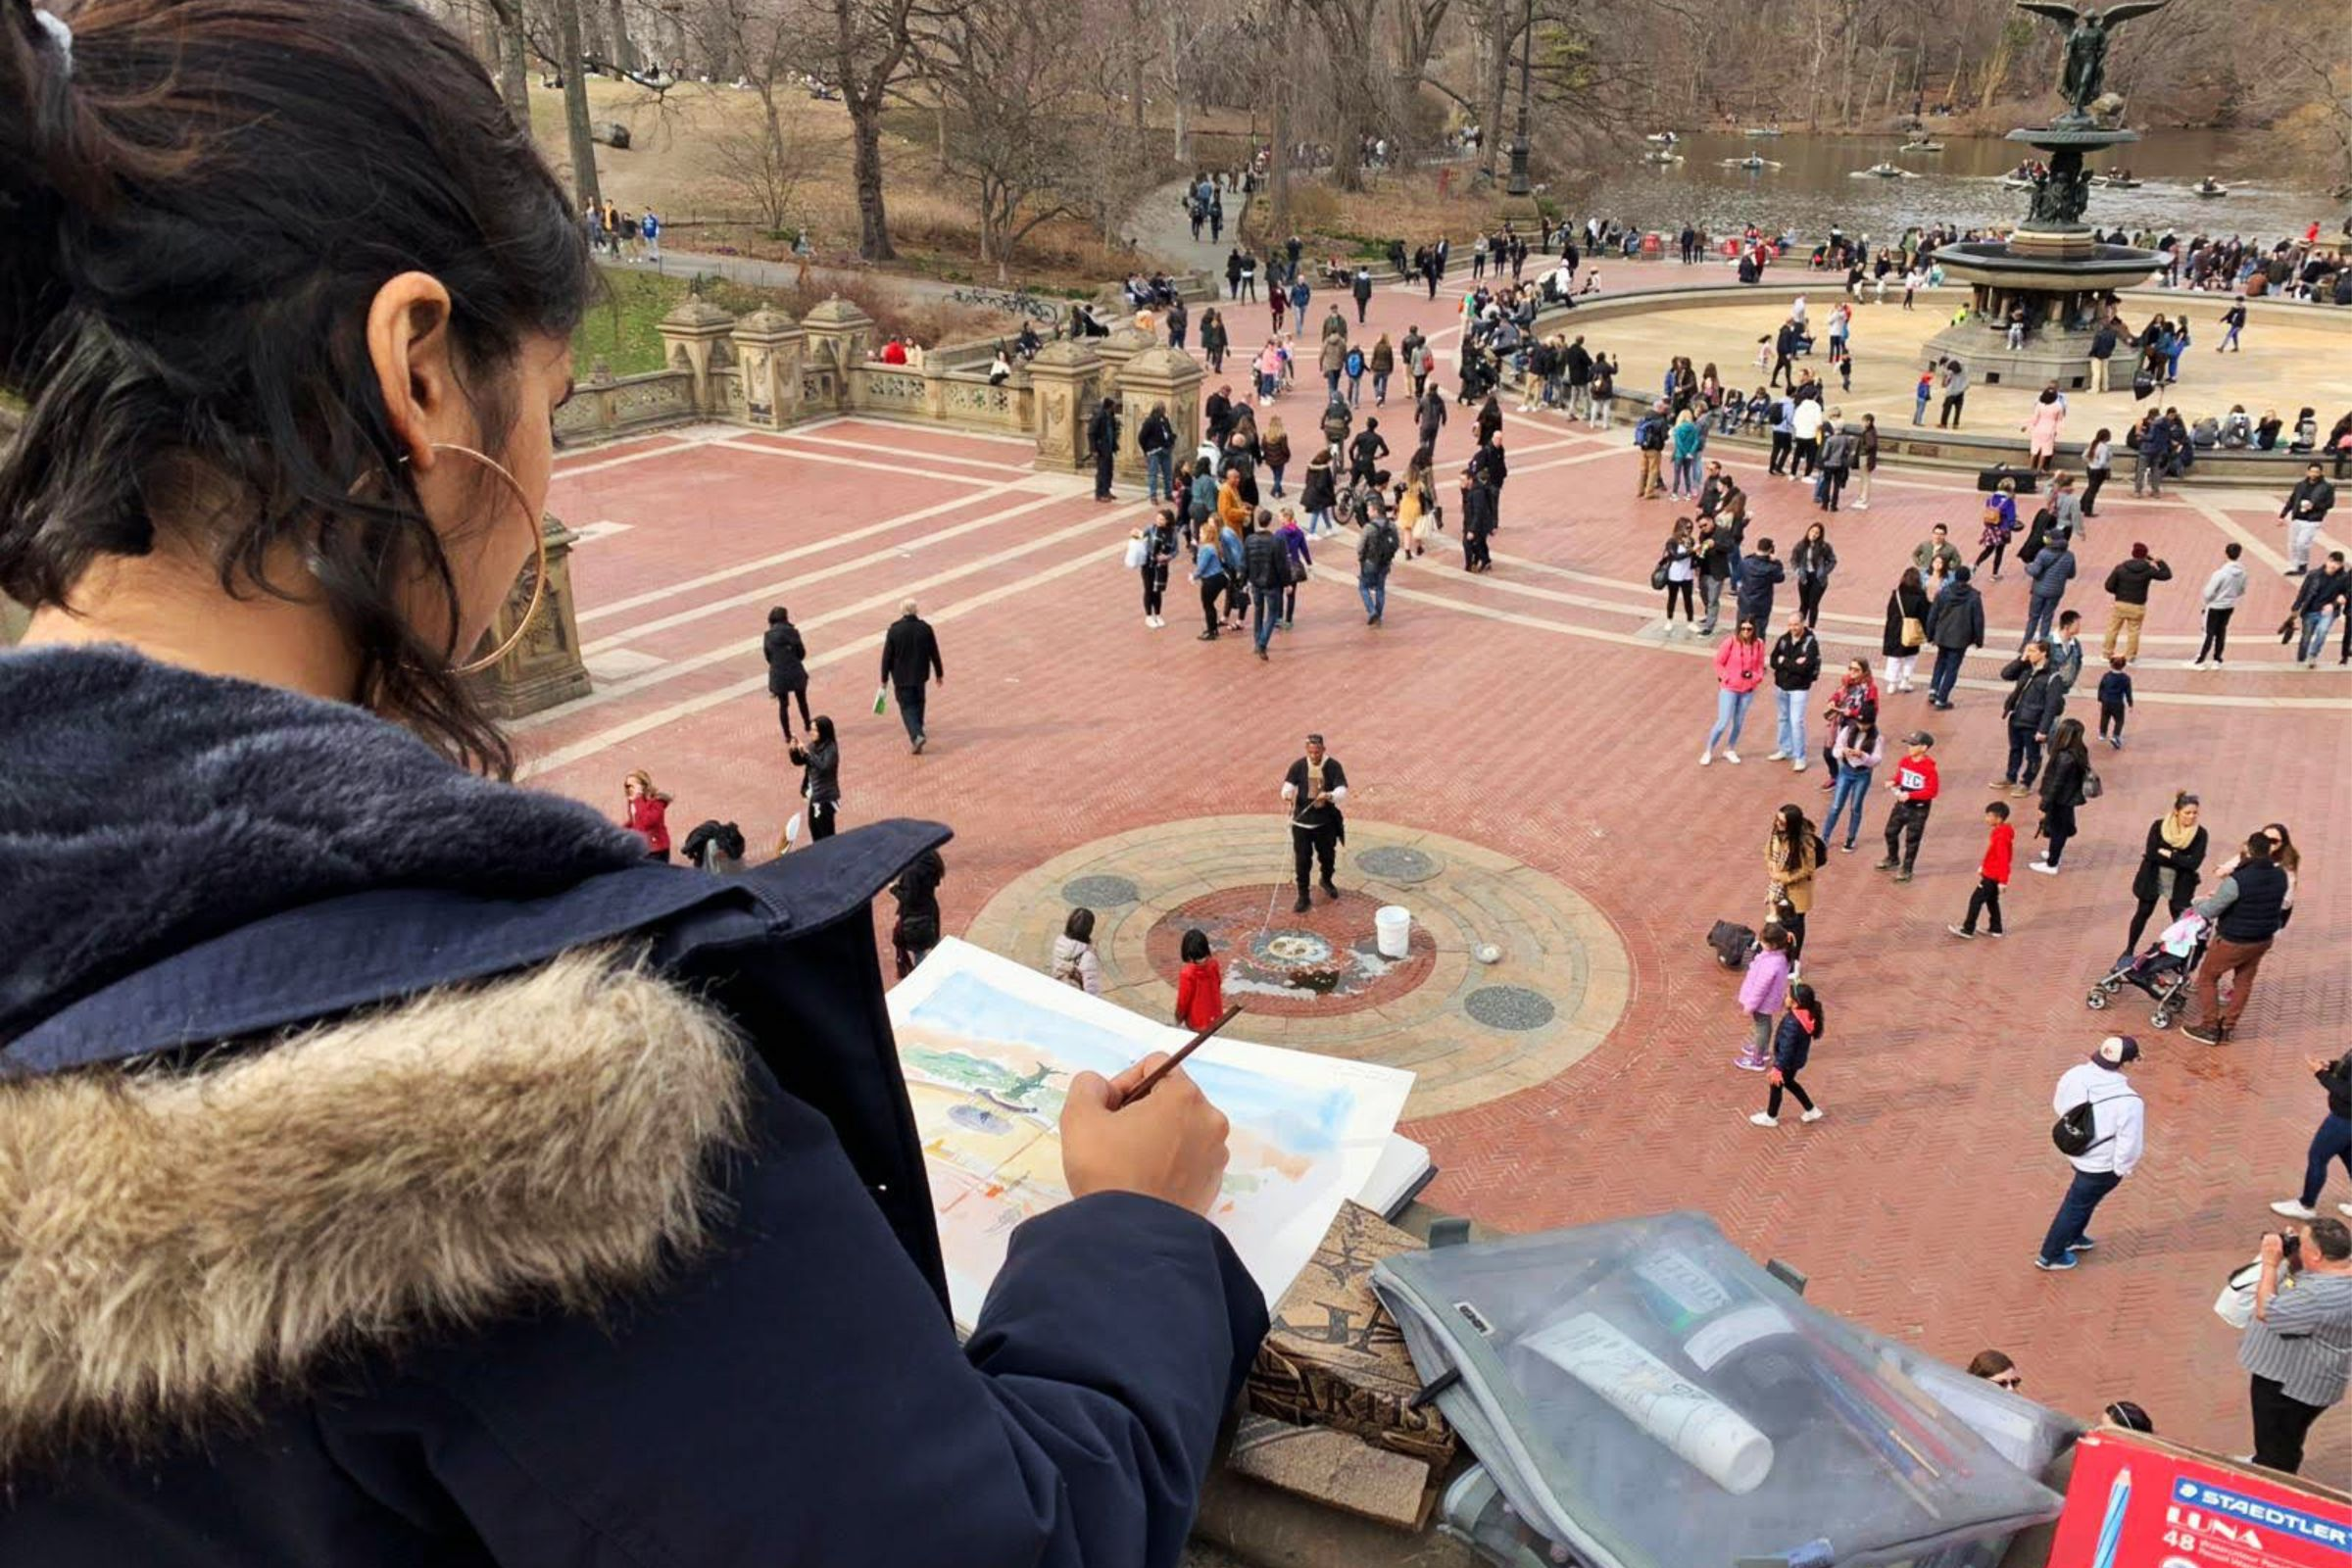 Woman drawing while looking over a railing at people and a fountain below